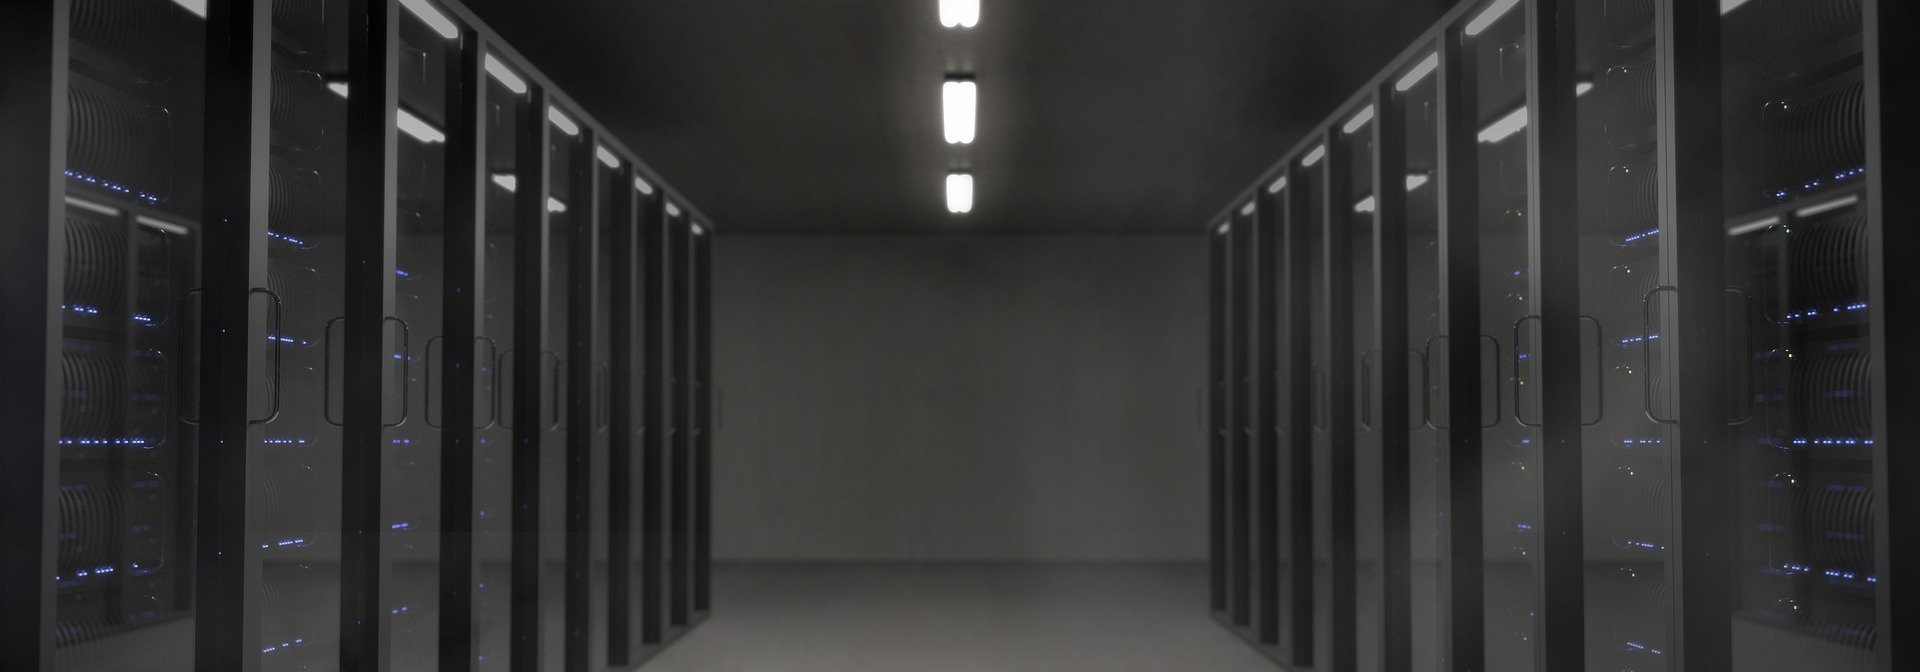 Server Room filled with Servers